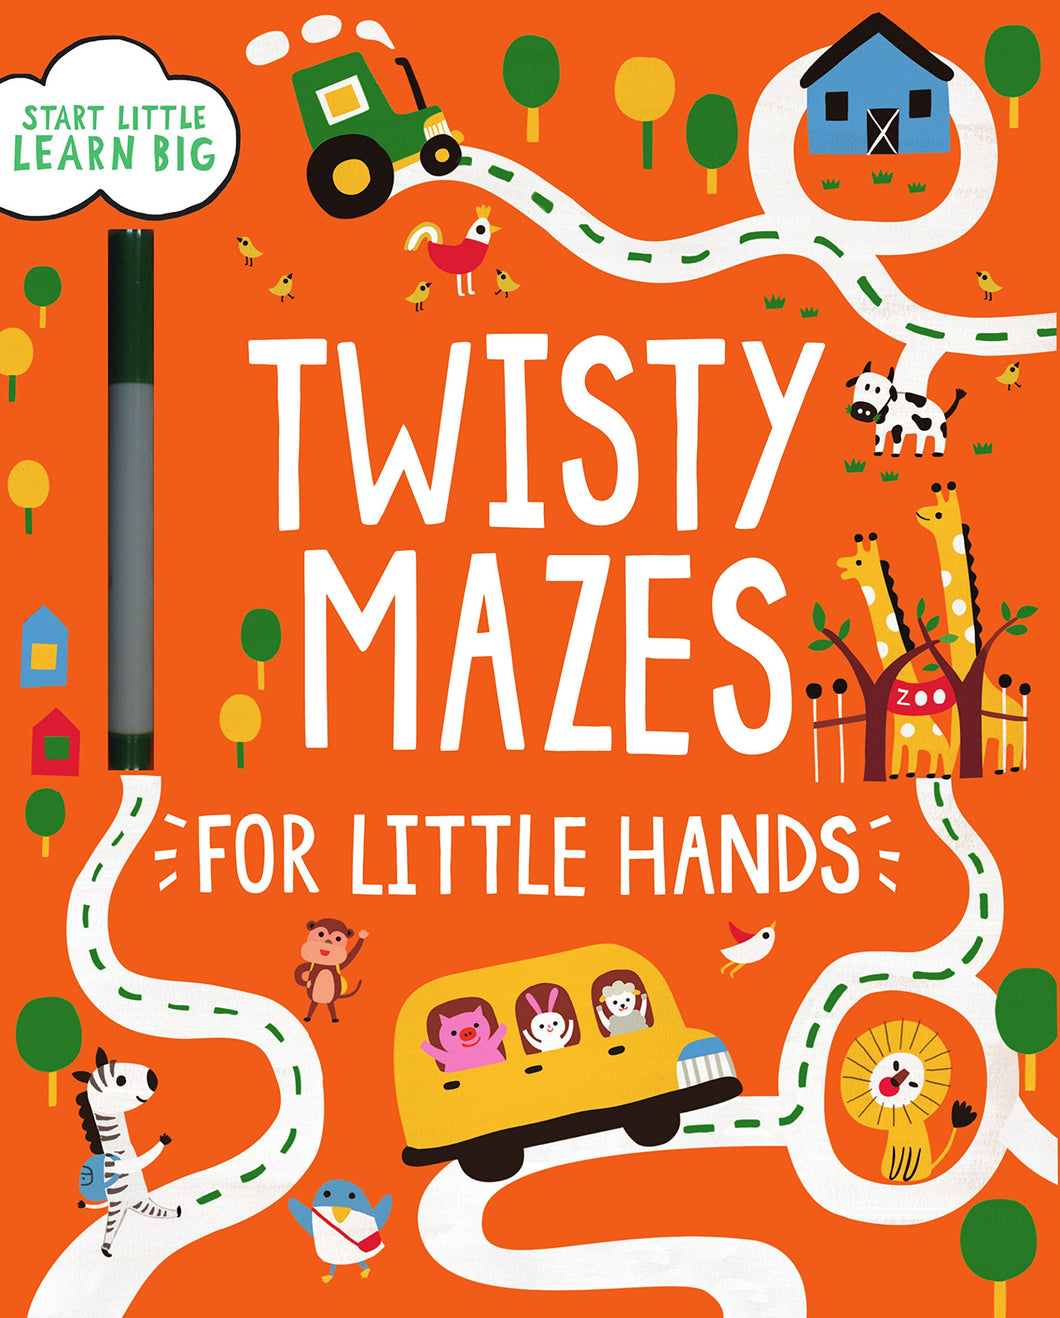 Twisty Mazes for Little Hands